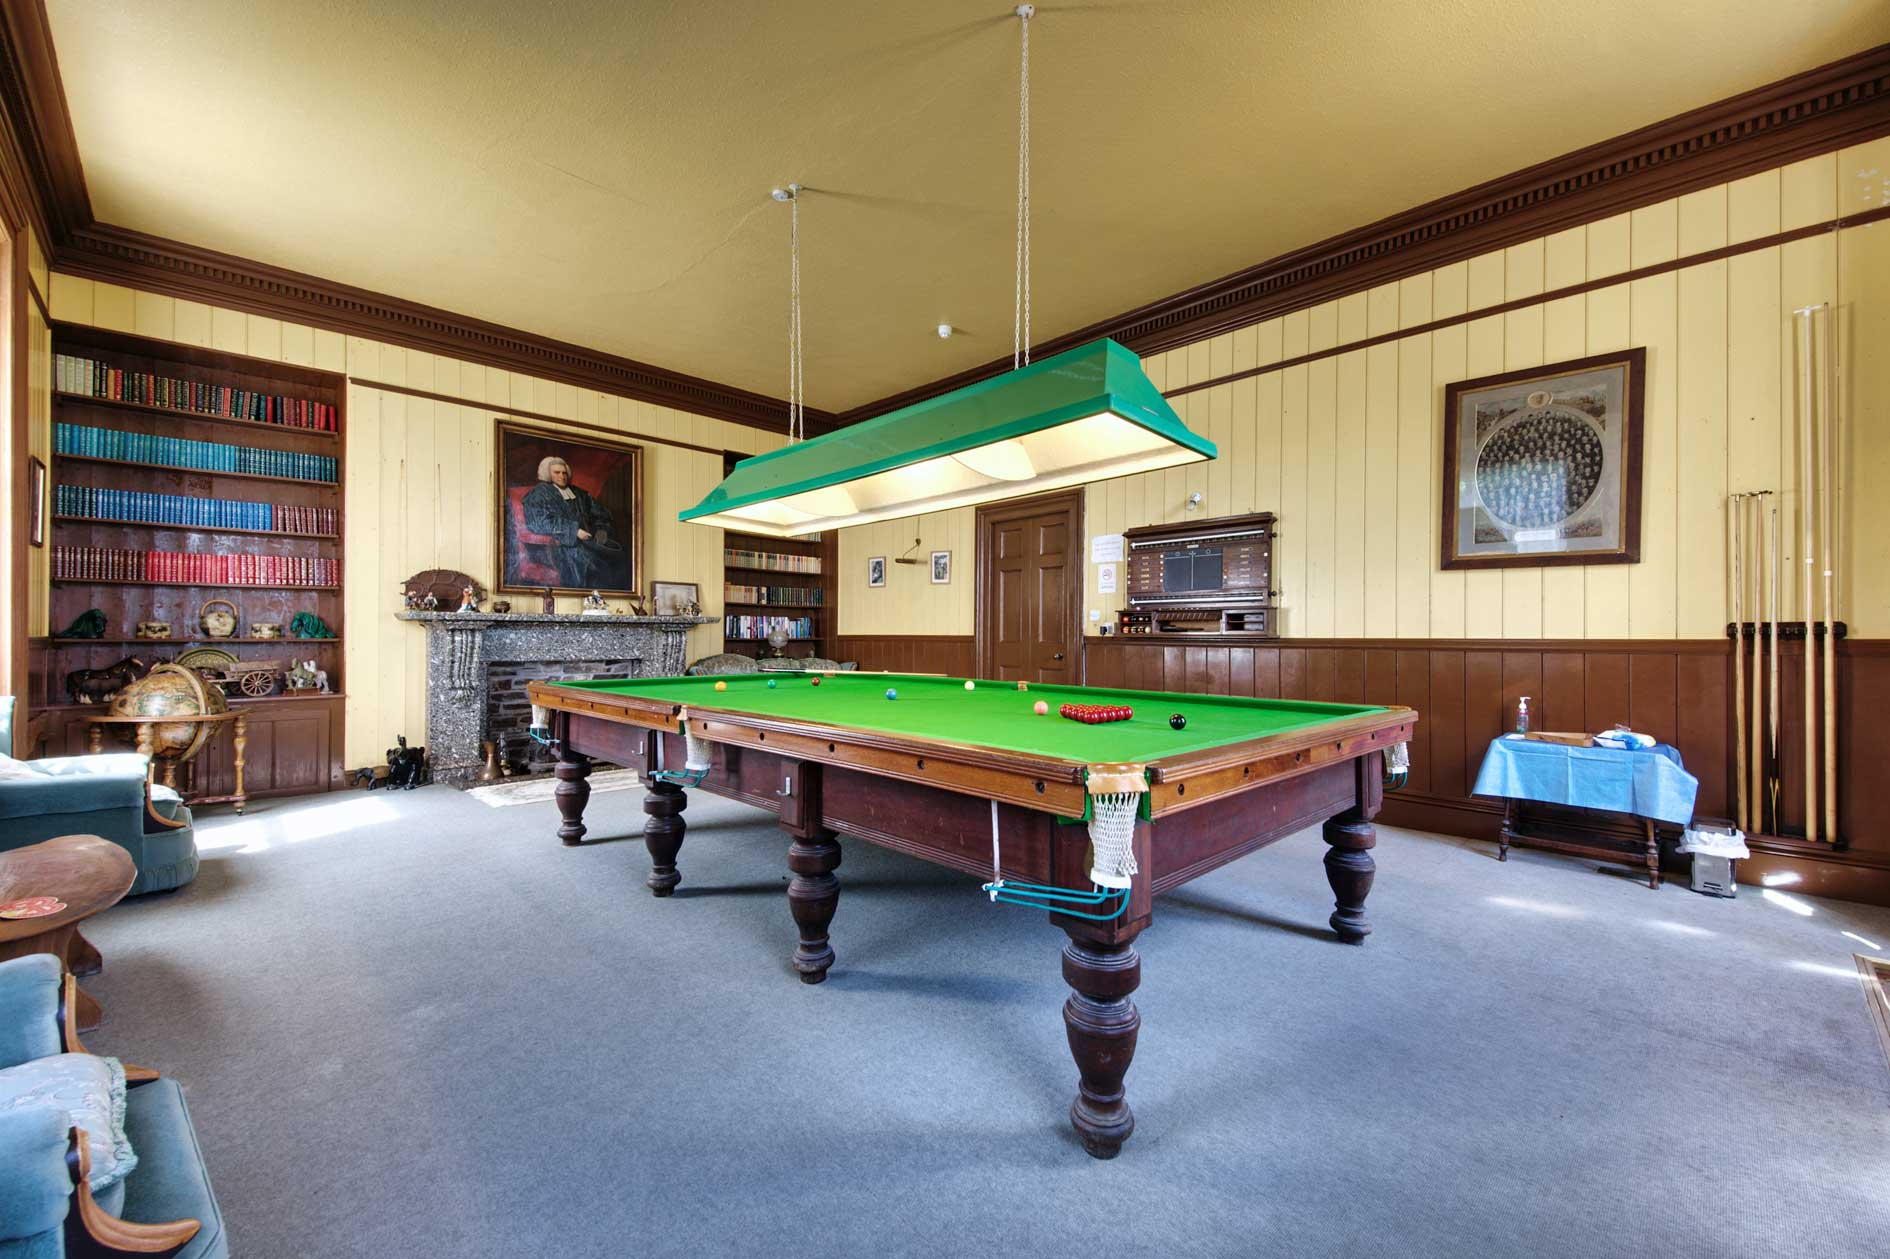 Snooker Room With Bookcase And Period Portrait On Wall